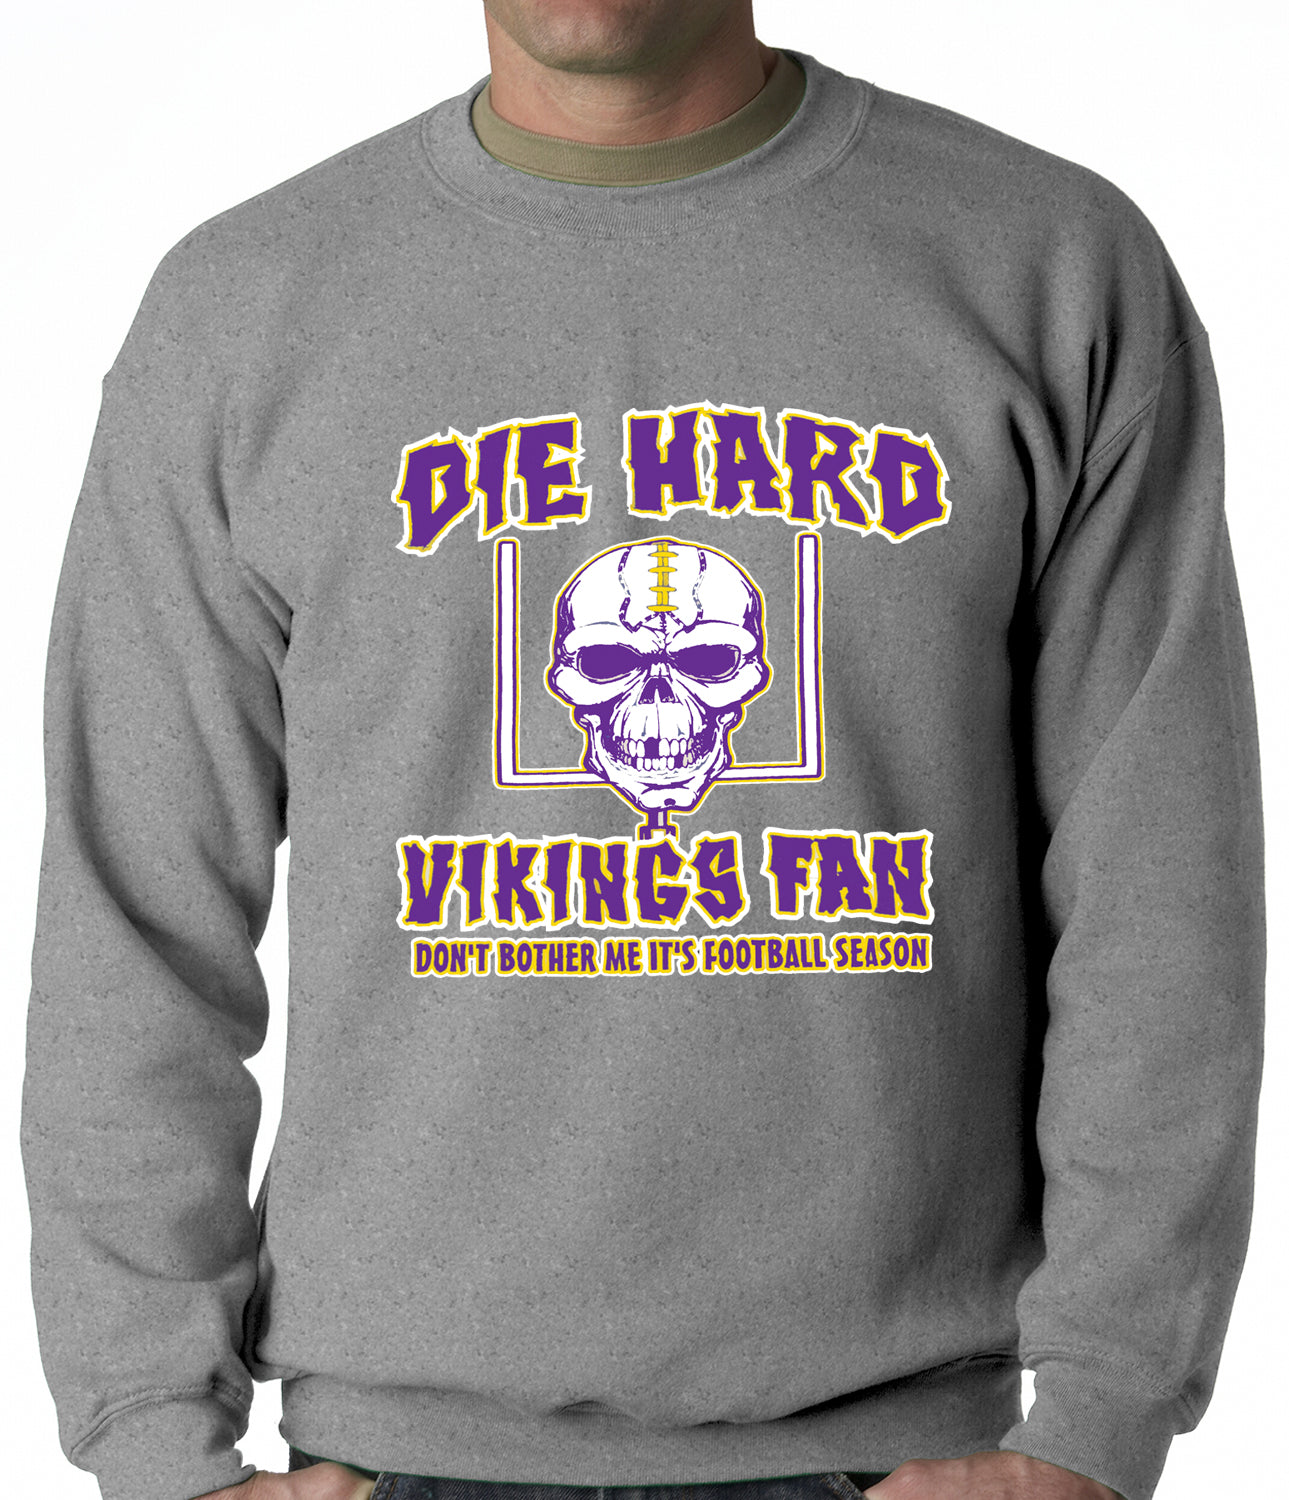 a698a2a38 Die Hard Vikings Football Fan Crewneck Sweatshirt – Bewild